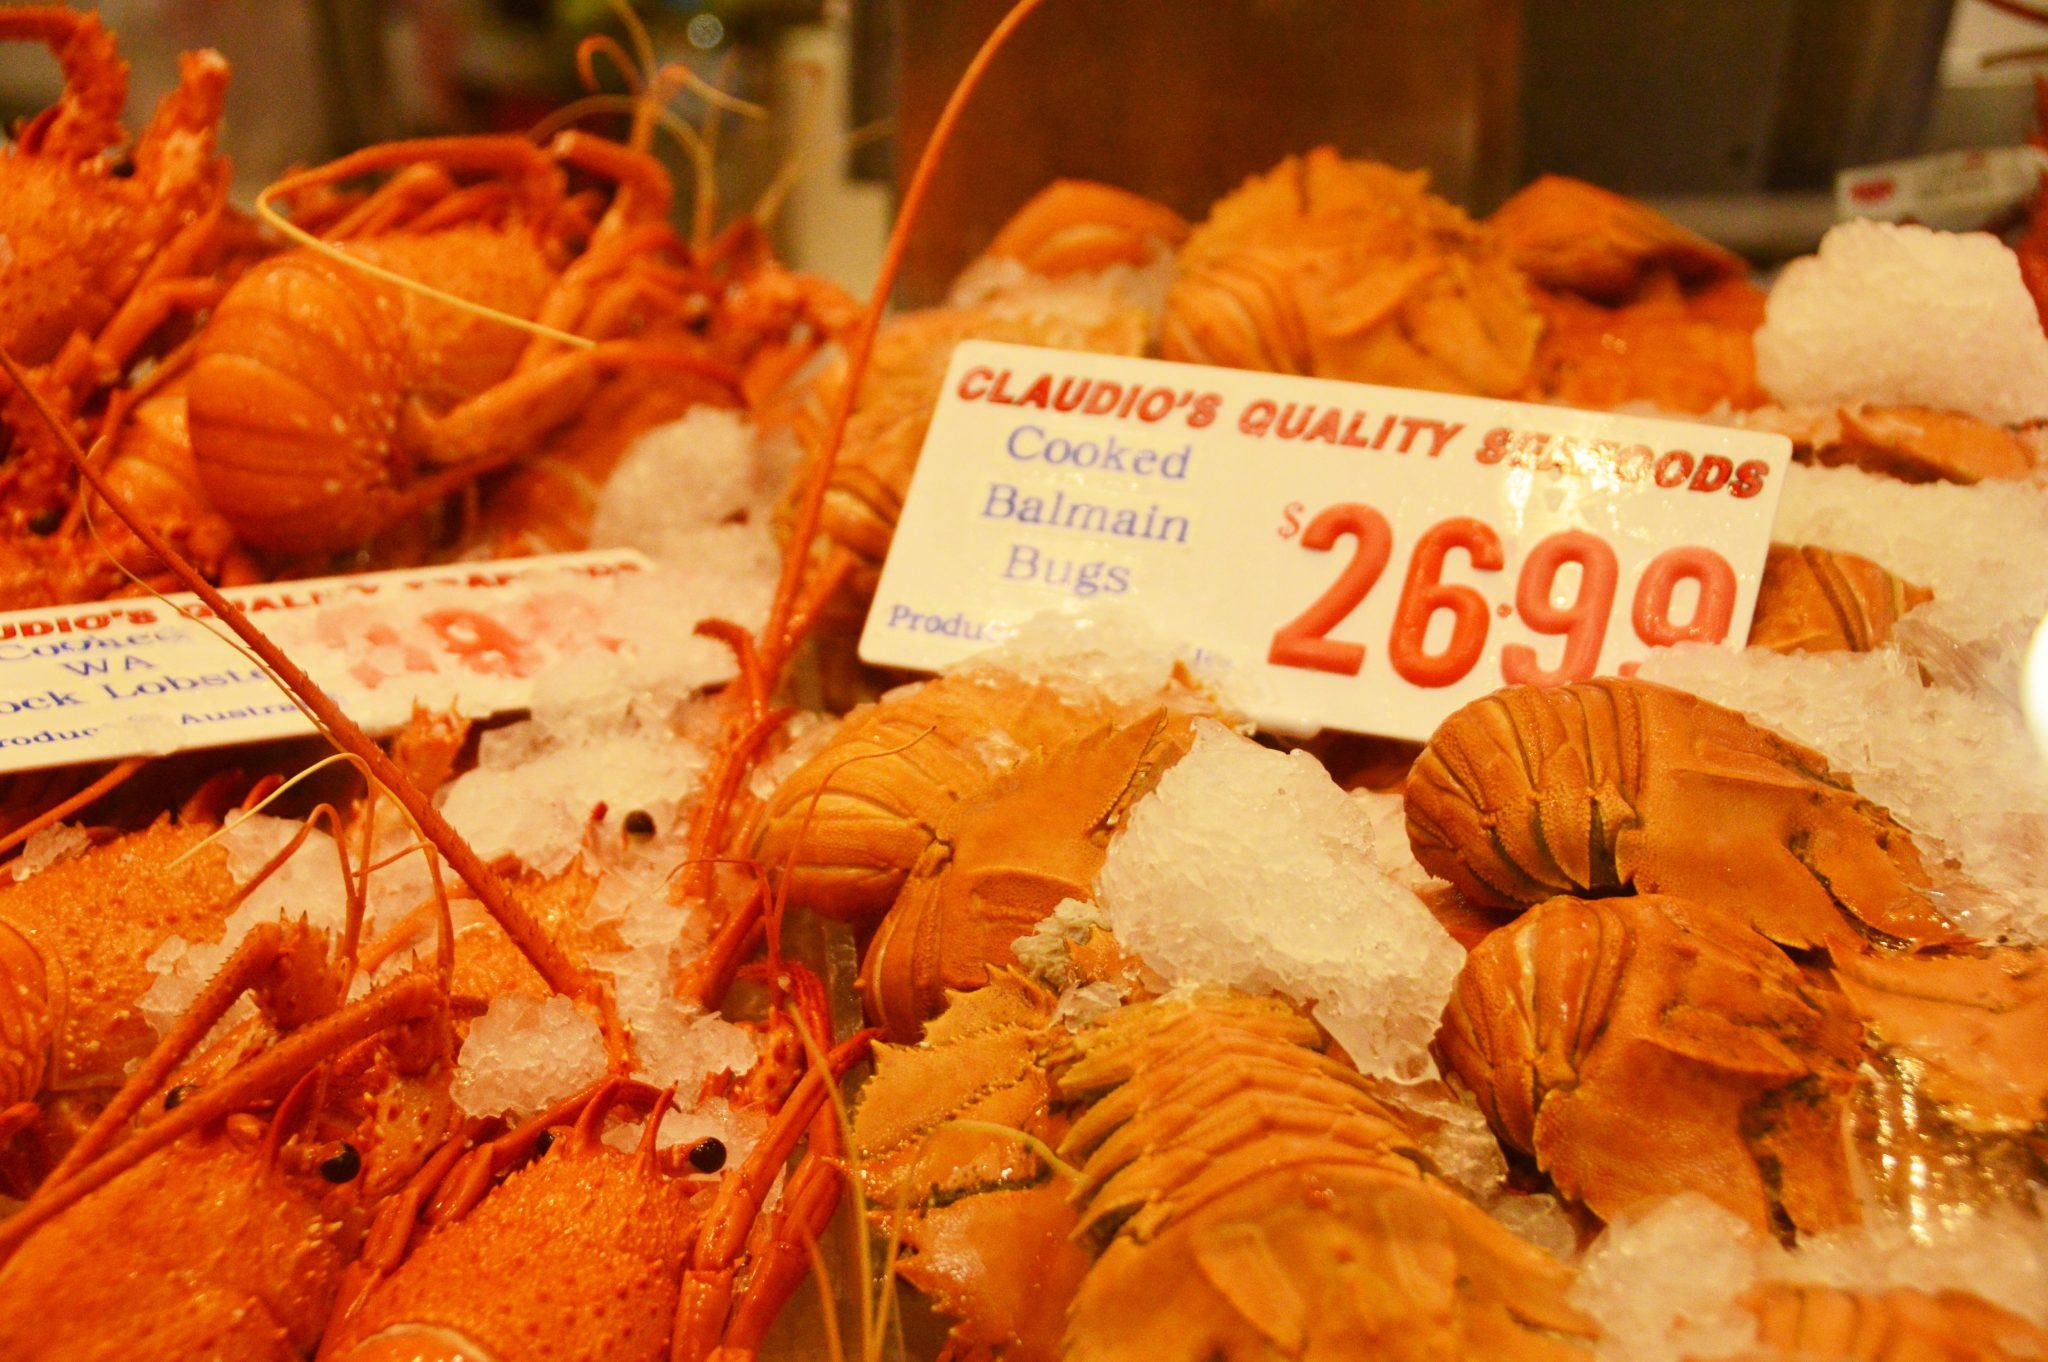 display of balmain bugs and pricing at sydney fish market